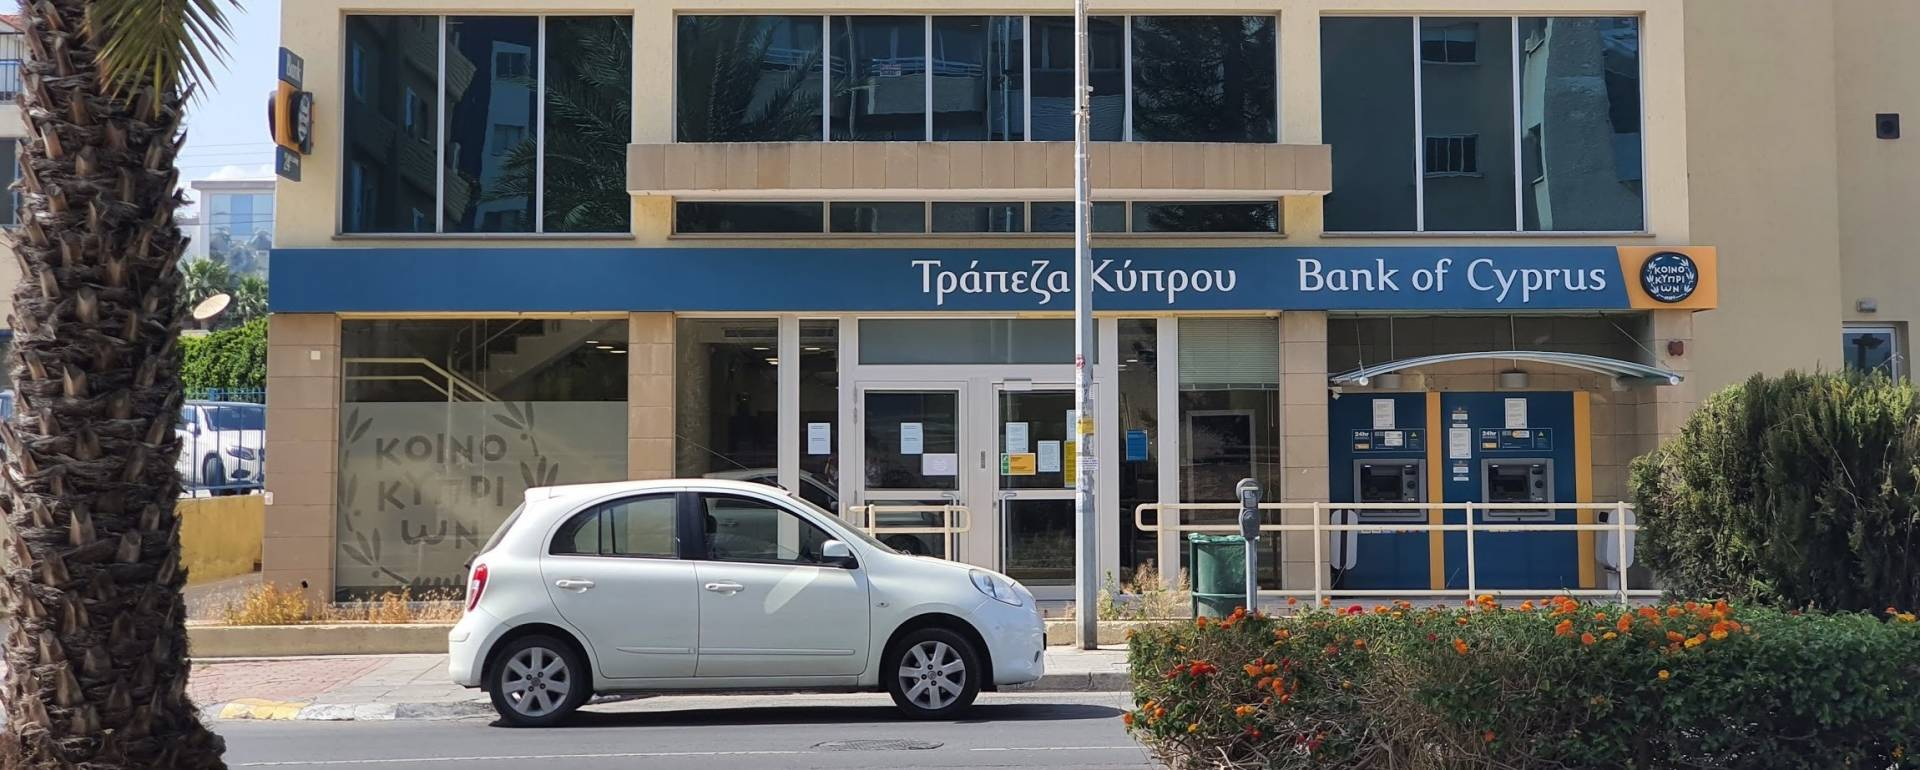 New modern business center in Nicosia